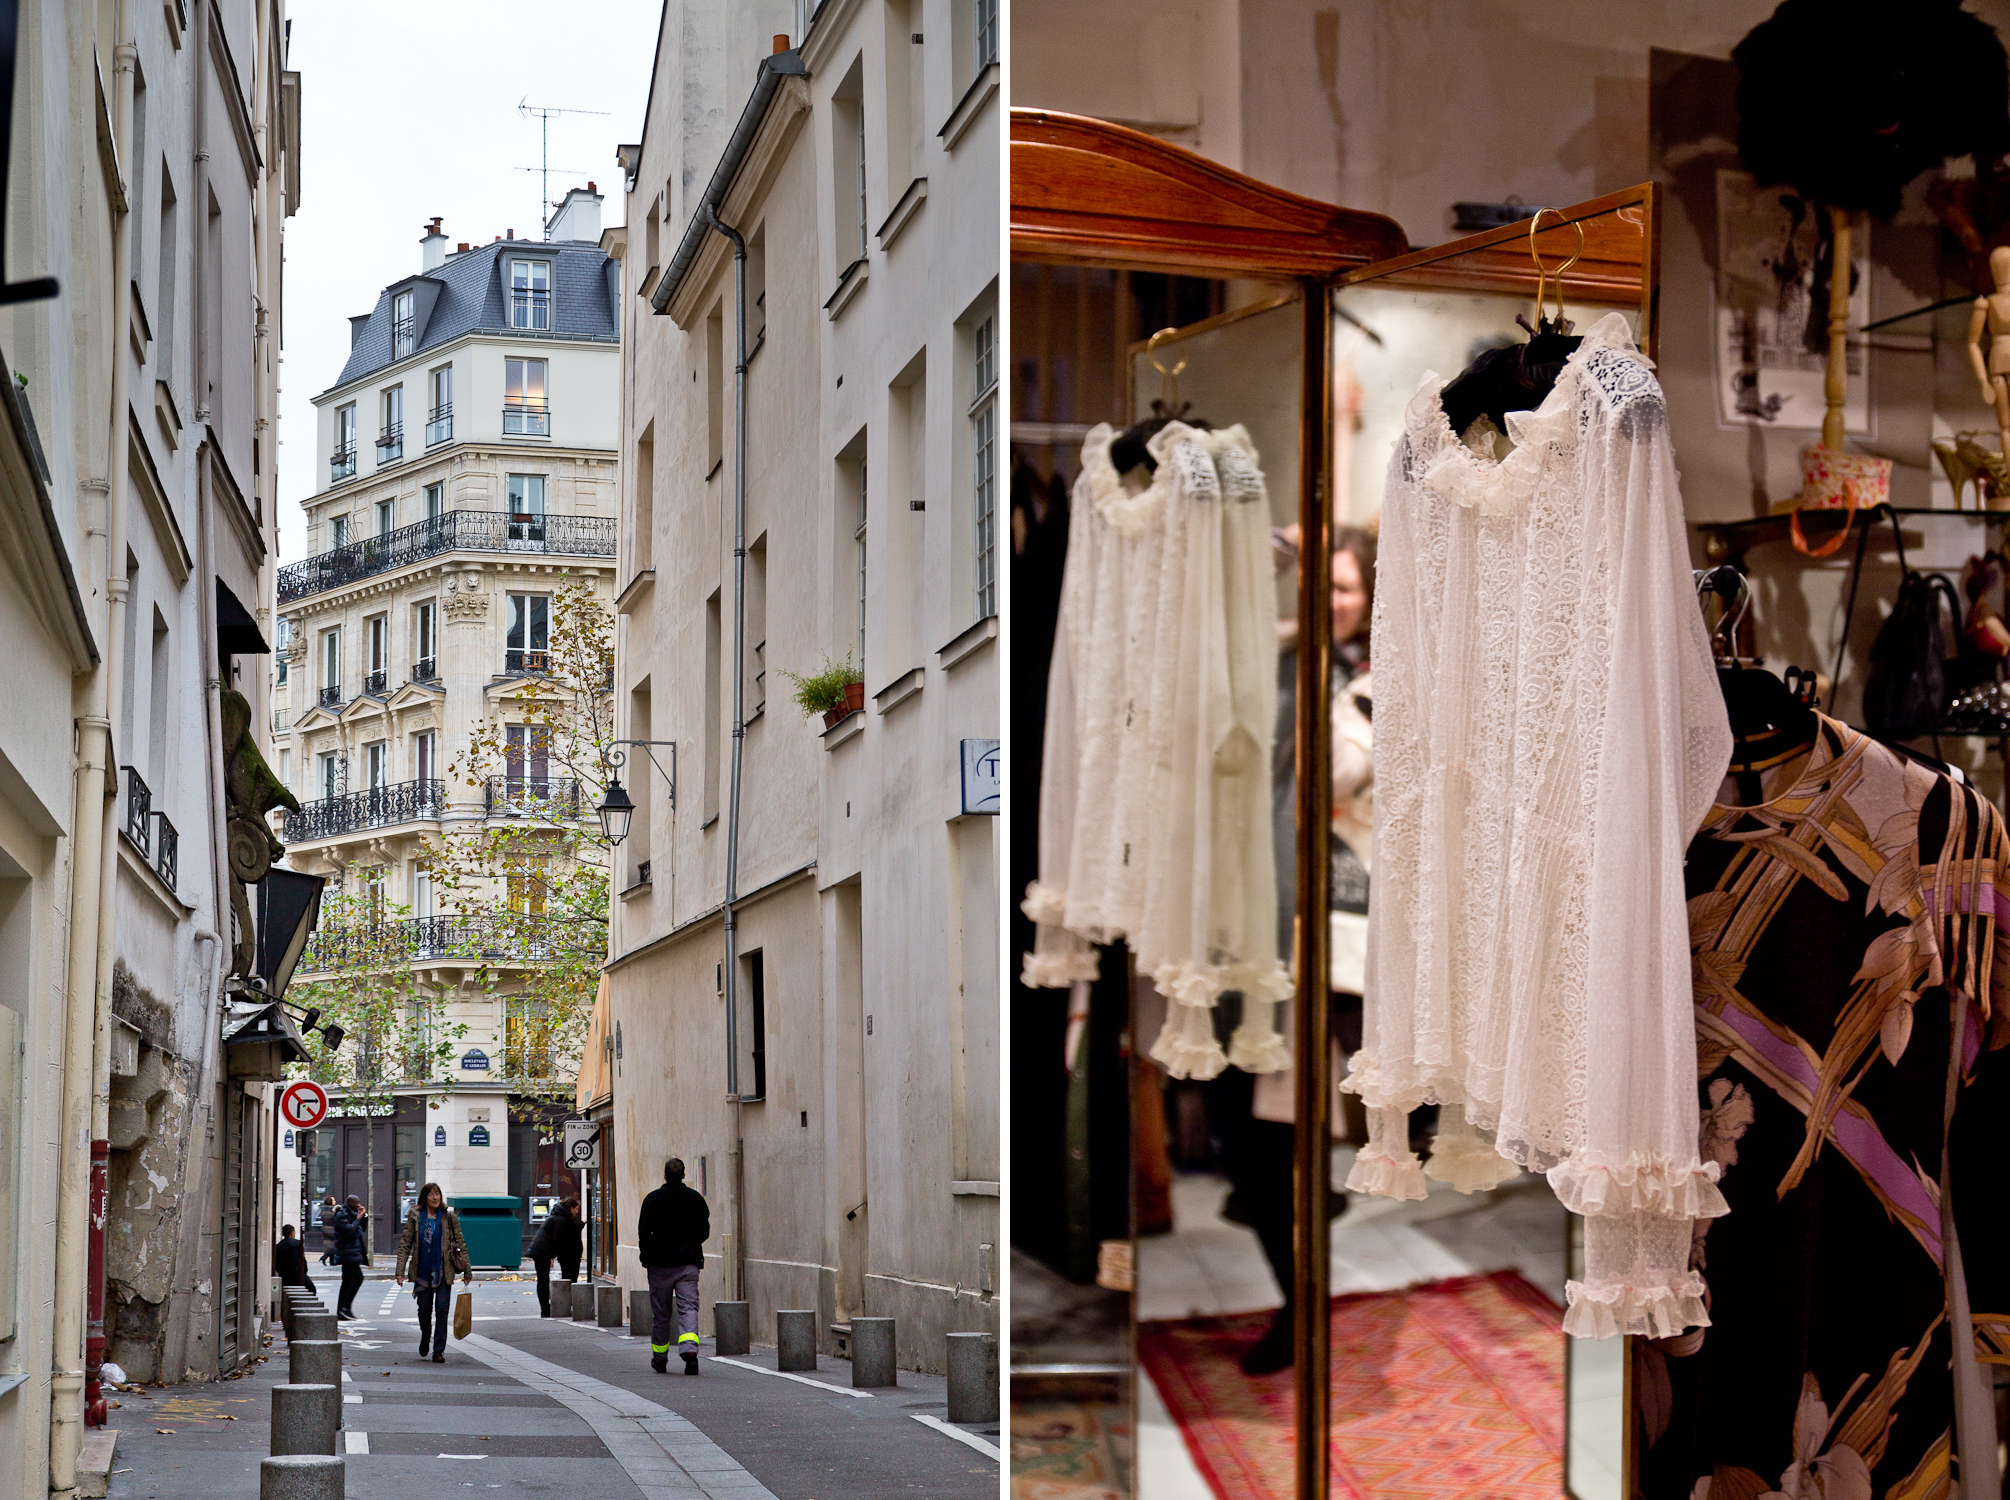 paris_shopping_6_arrondissement_vintage_fashion_blog_18